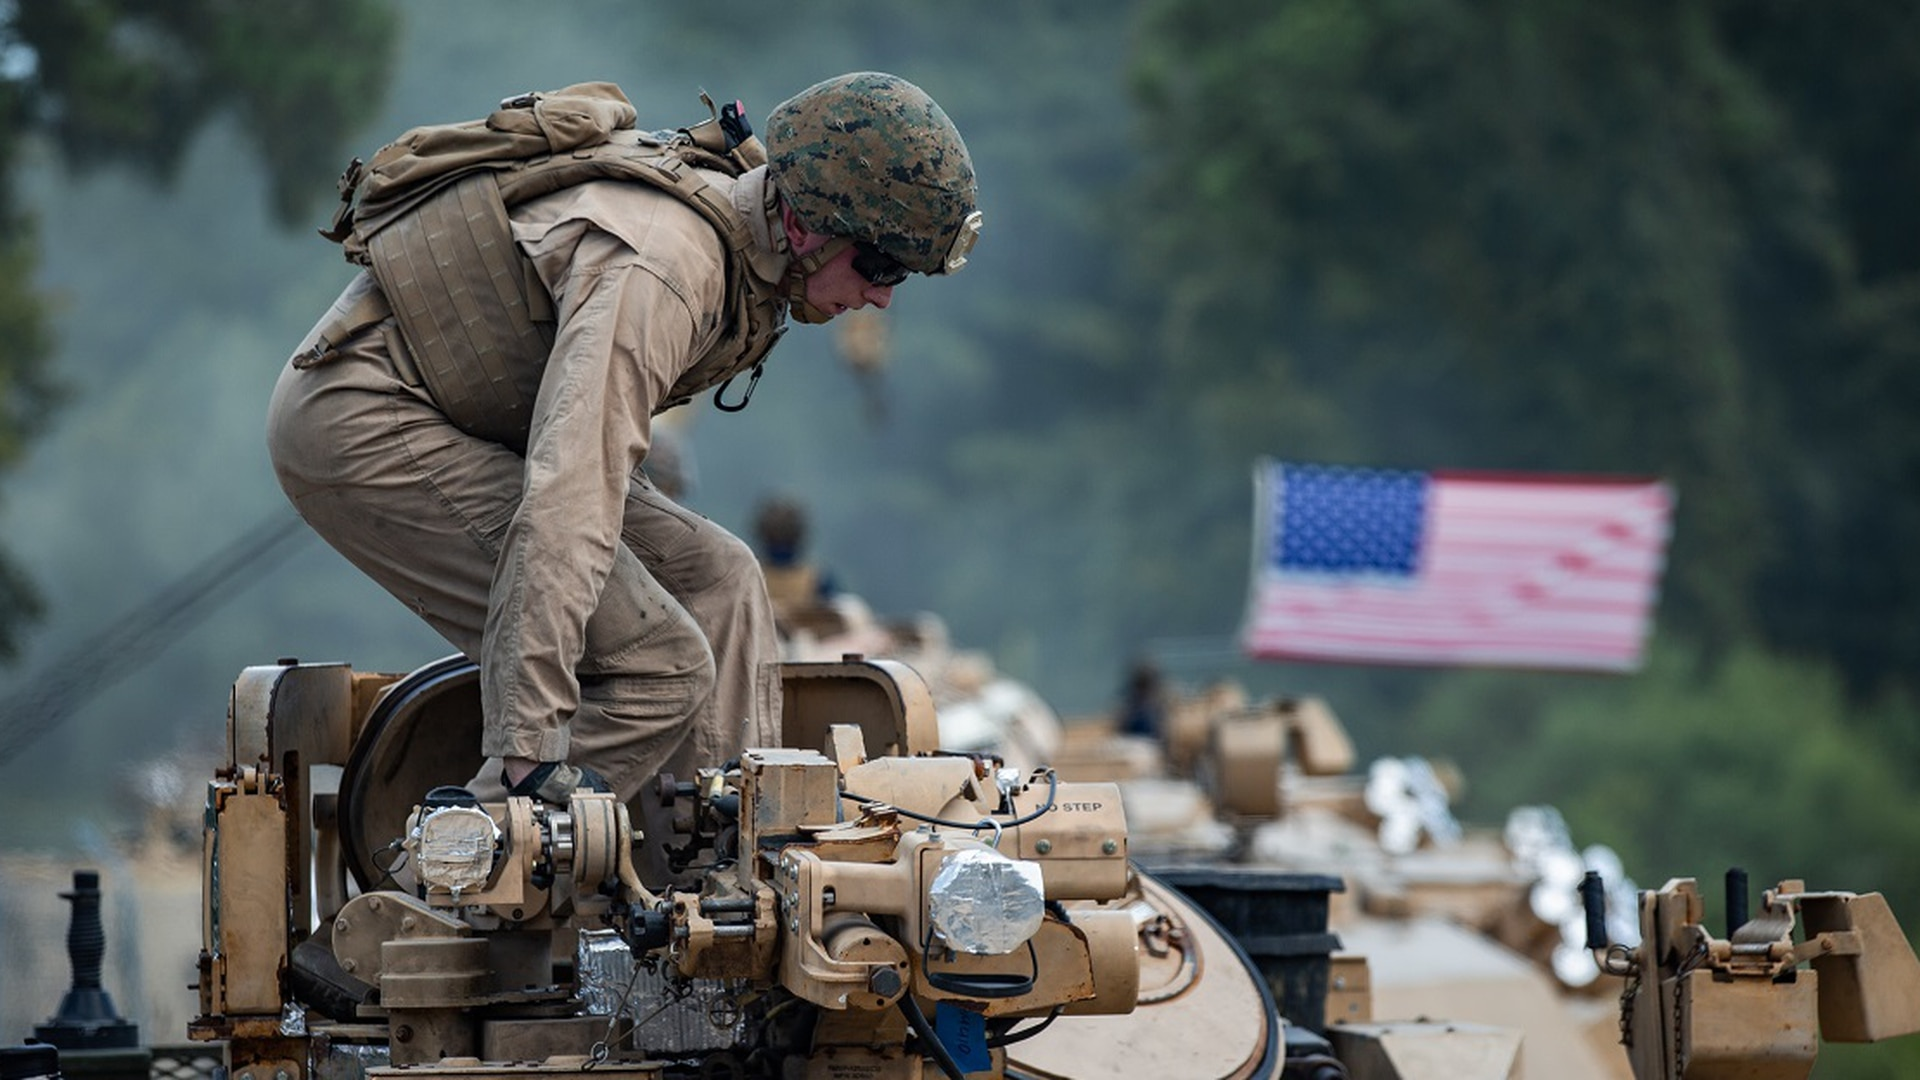 A U.S. Marine with 2d Tank Battalion, 2d Marine Division, prepares to depart from a tank lot on Camp Lejeune, North Carolina, July 27, 2020. (Lance Cpl. Patrick King/Marine Corps)